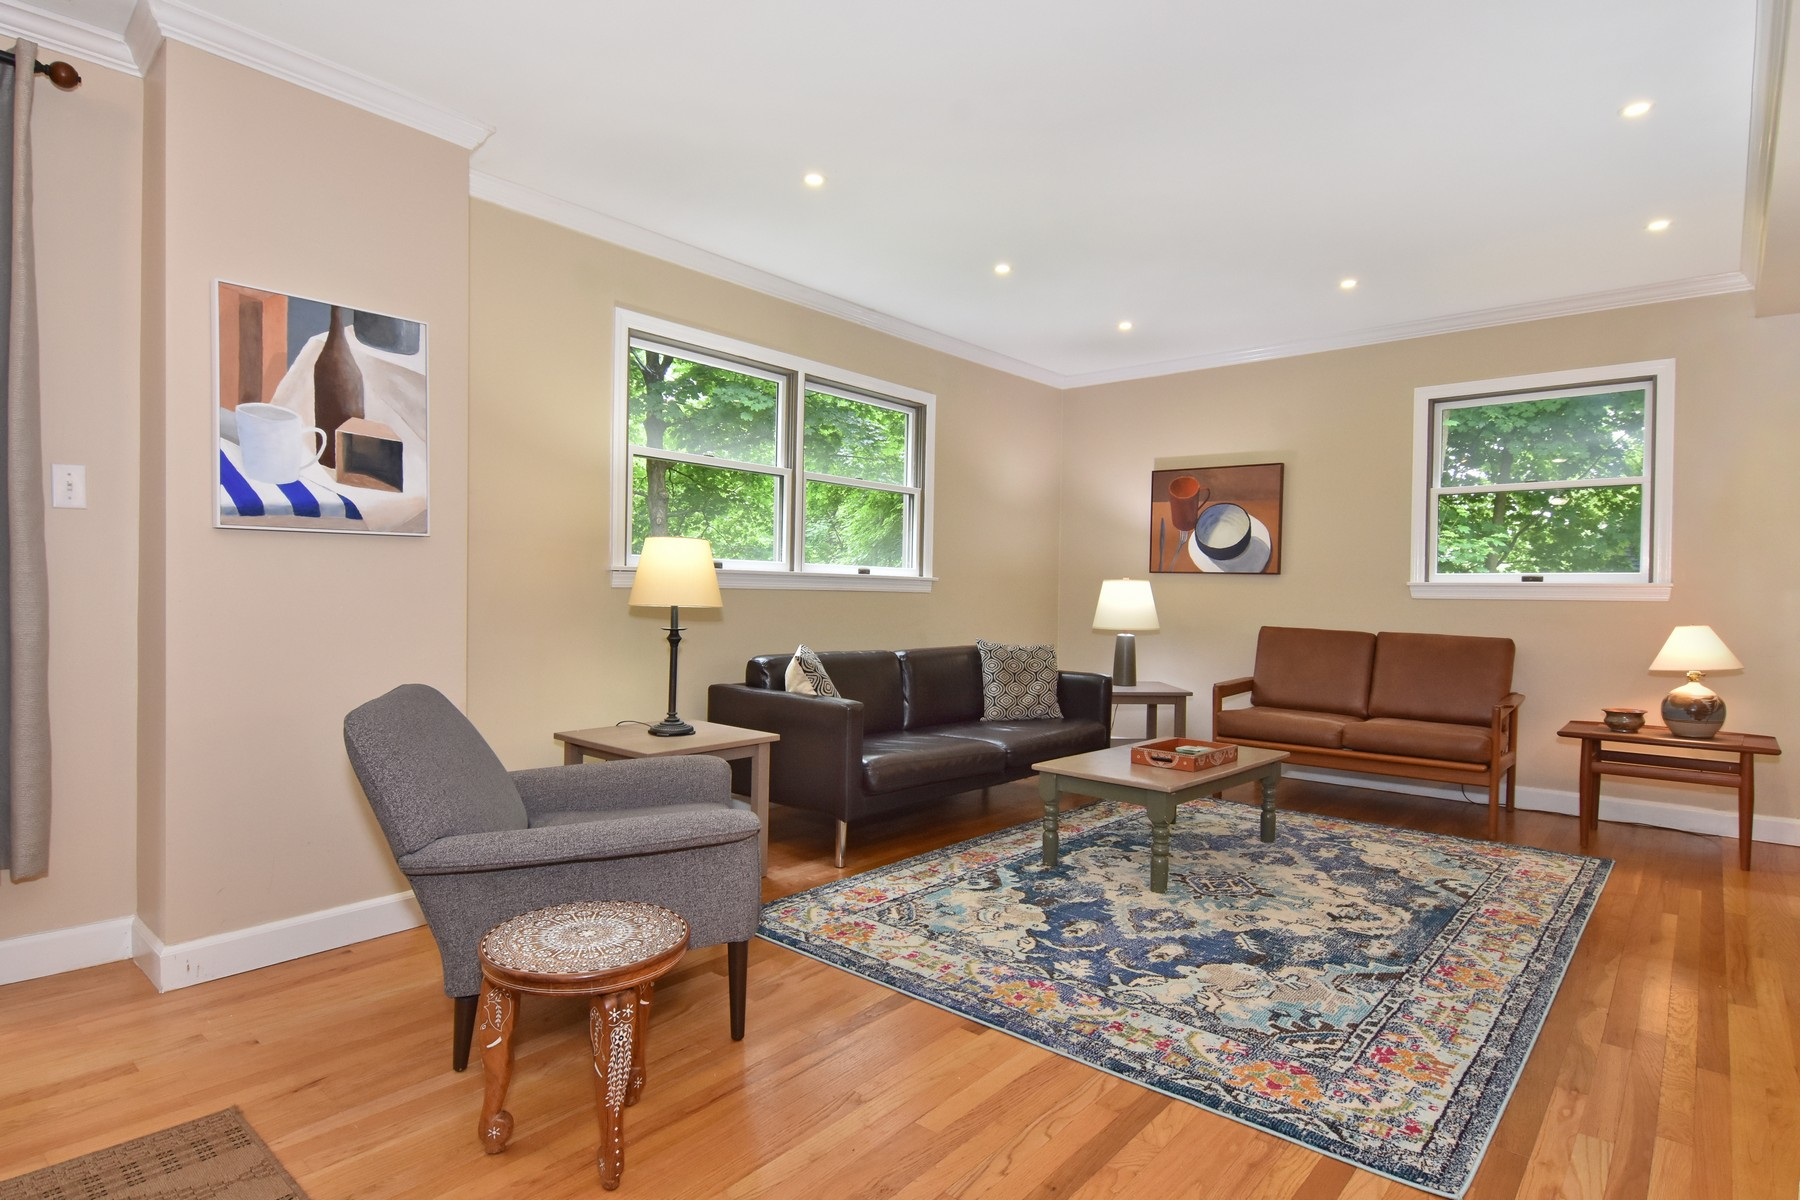 Single Family Homes for Active at 63 Beacon Hill Road 63 Beacon Hill Rd Ardsley, New York 10502 United States